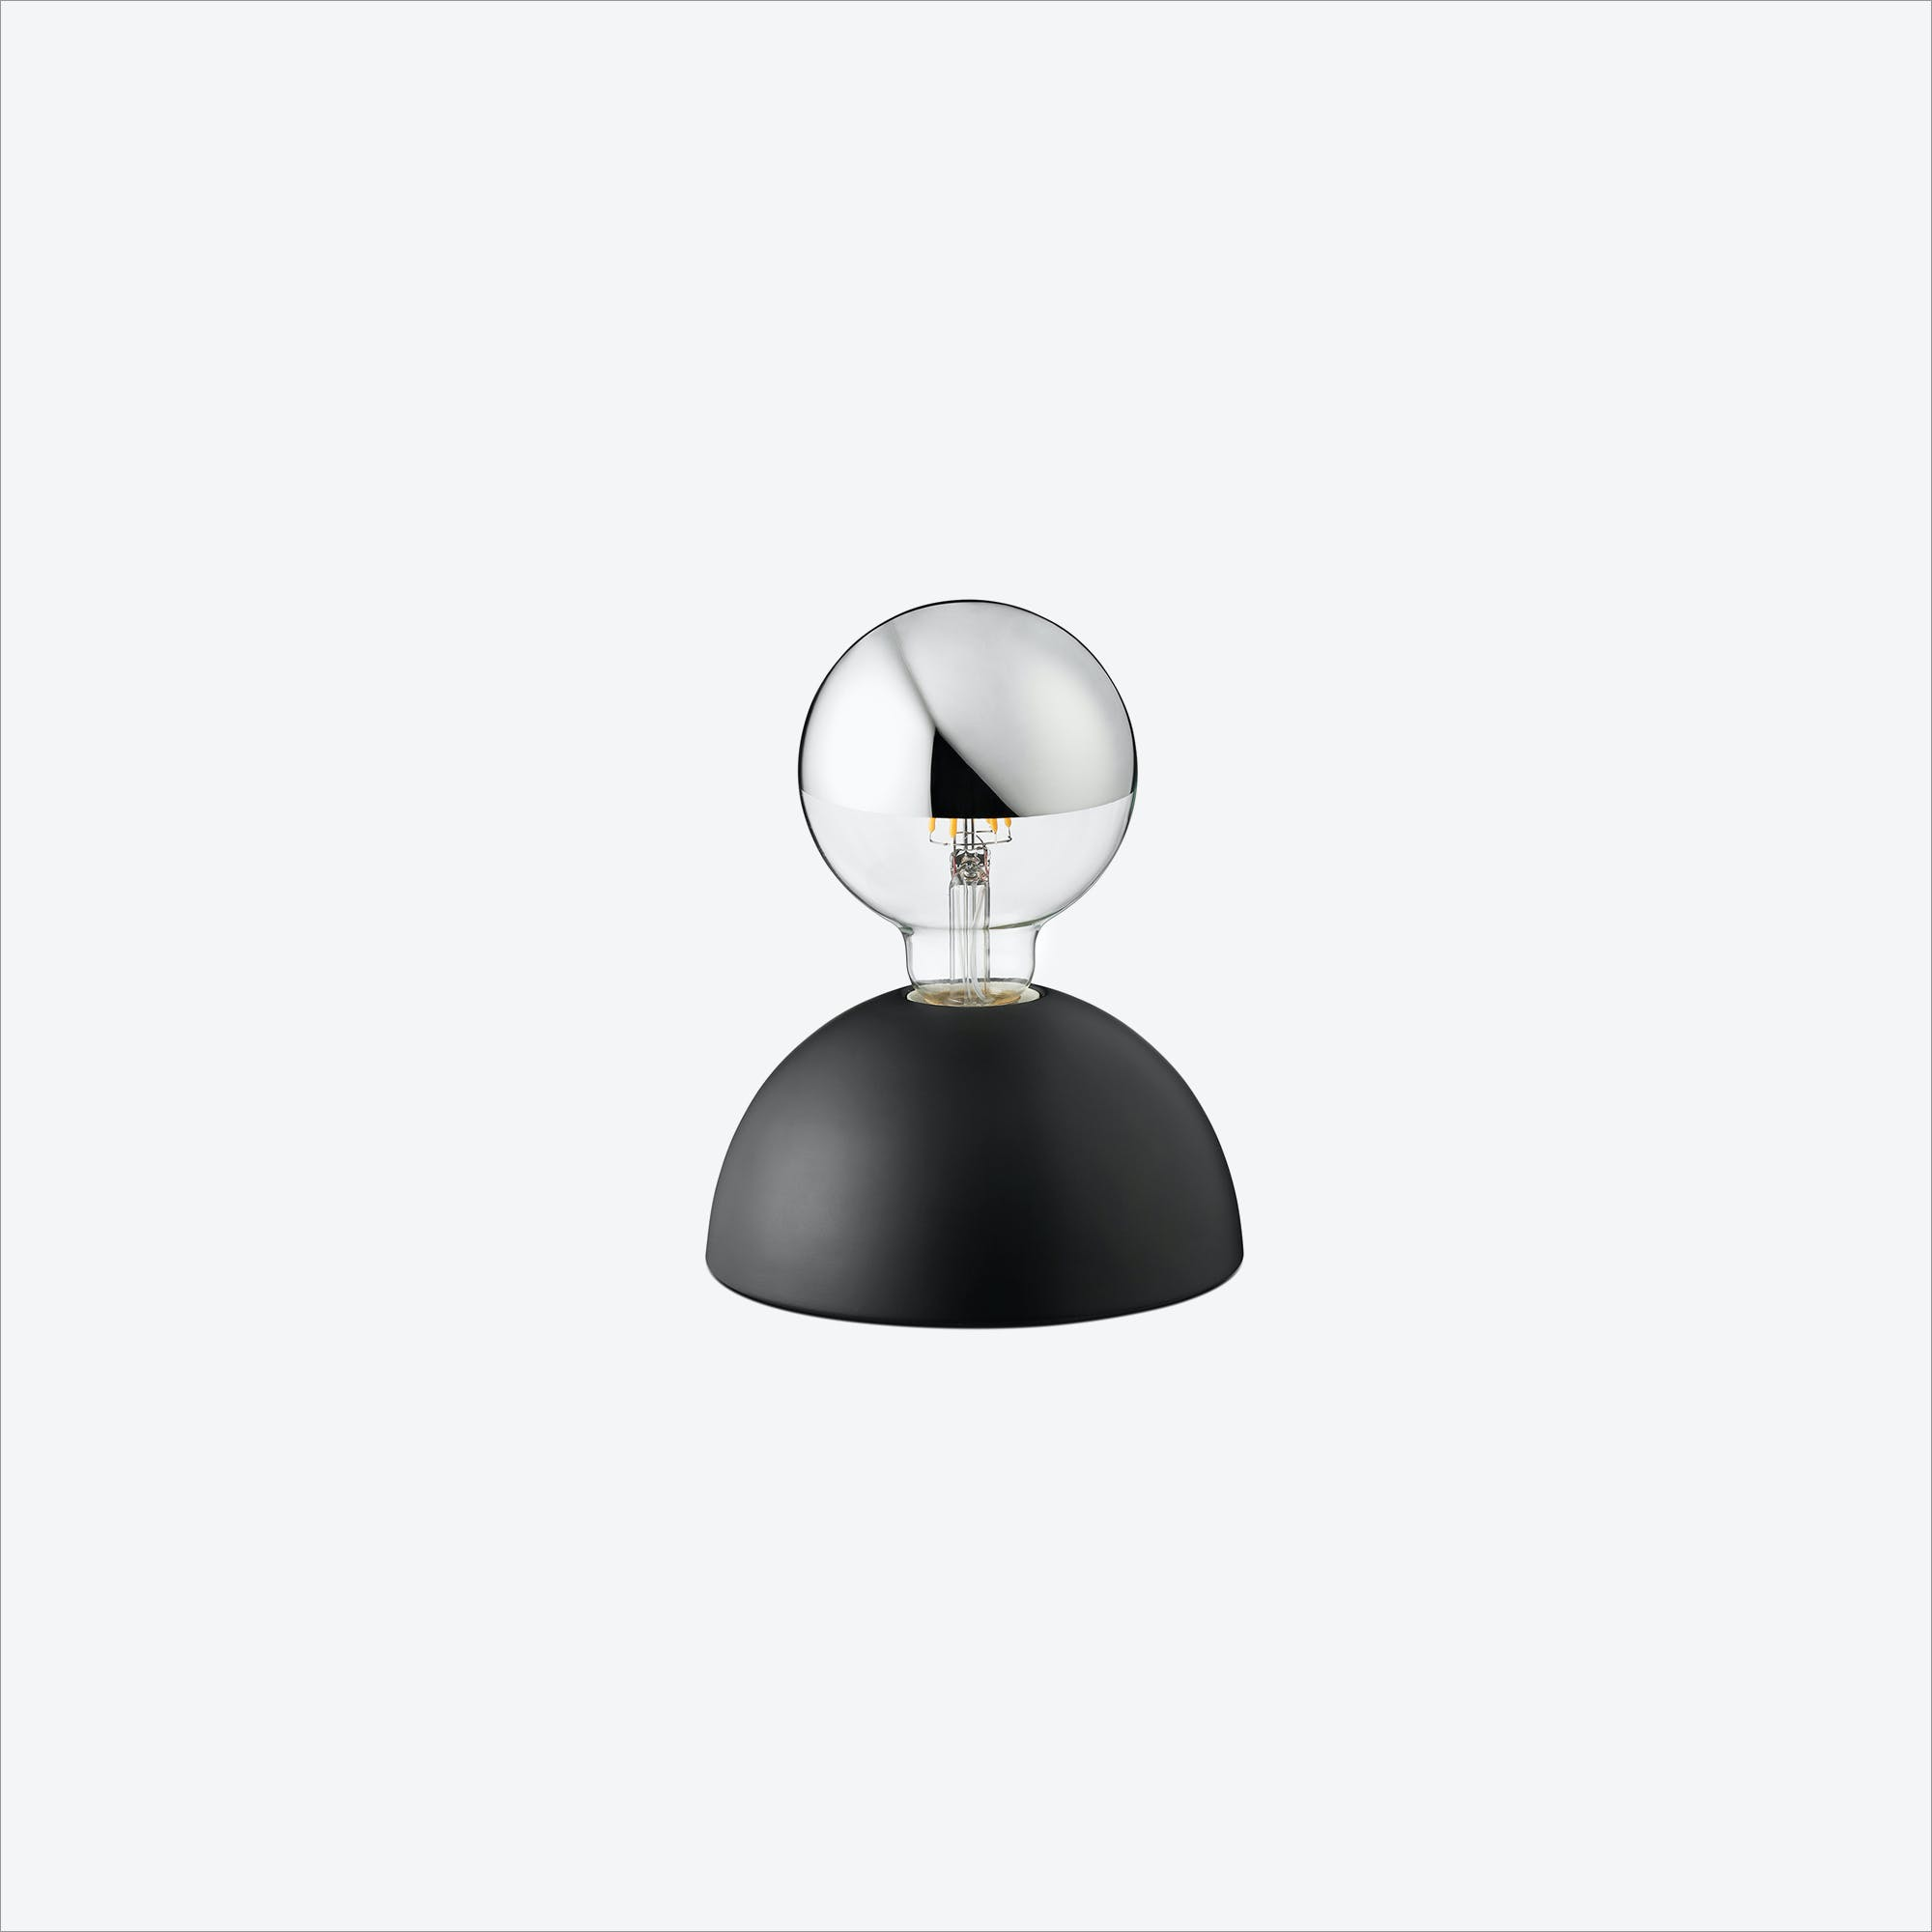 Pat Table Lamp in Black